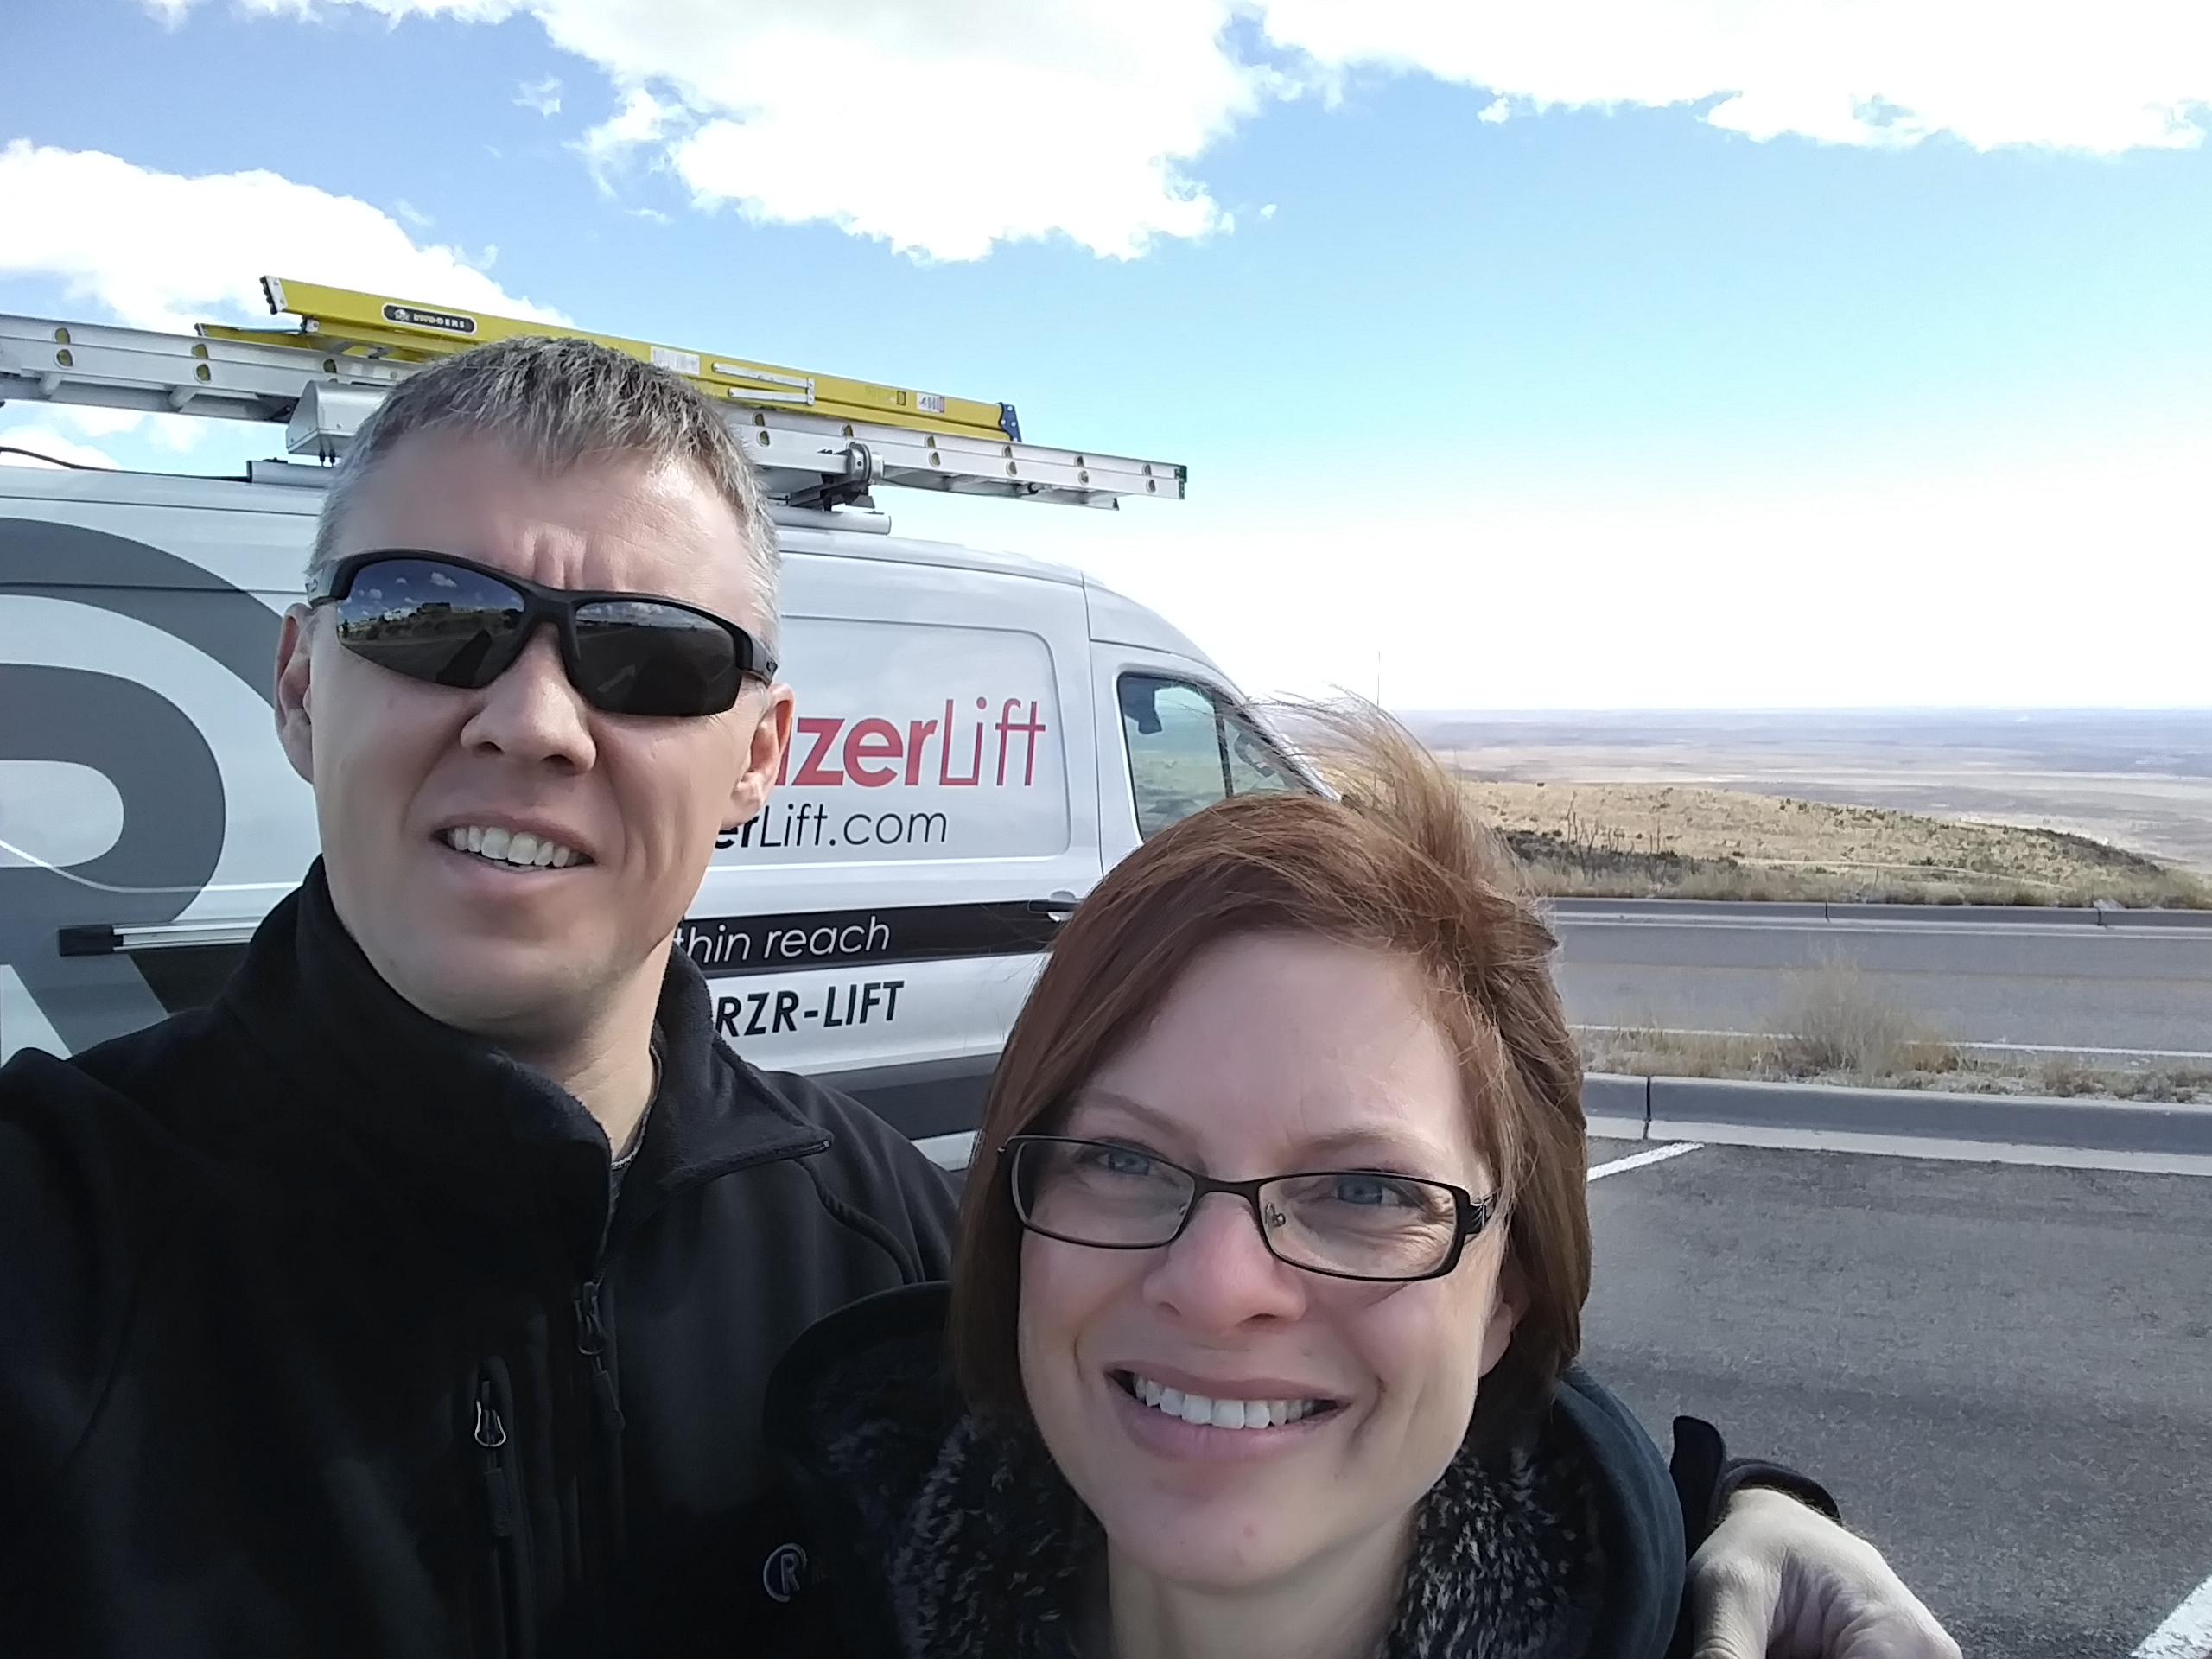 RazerLift roadtrip 2019 – my leg of the trip